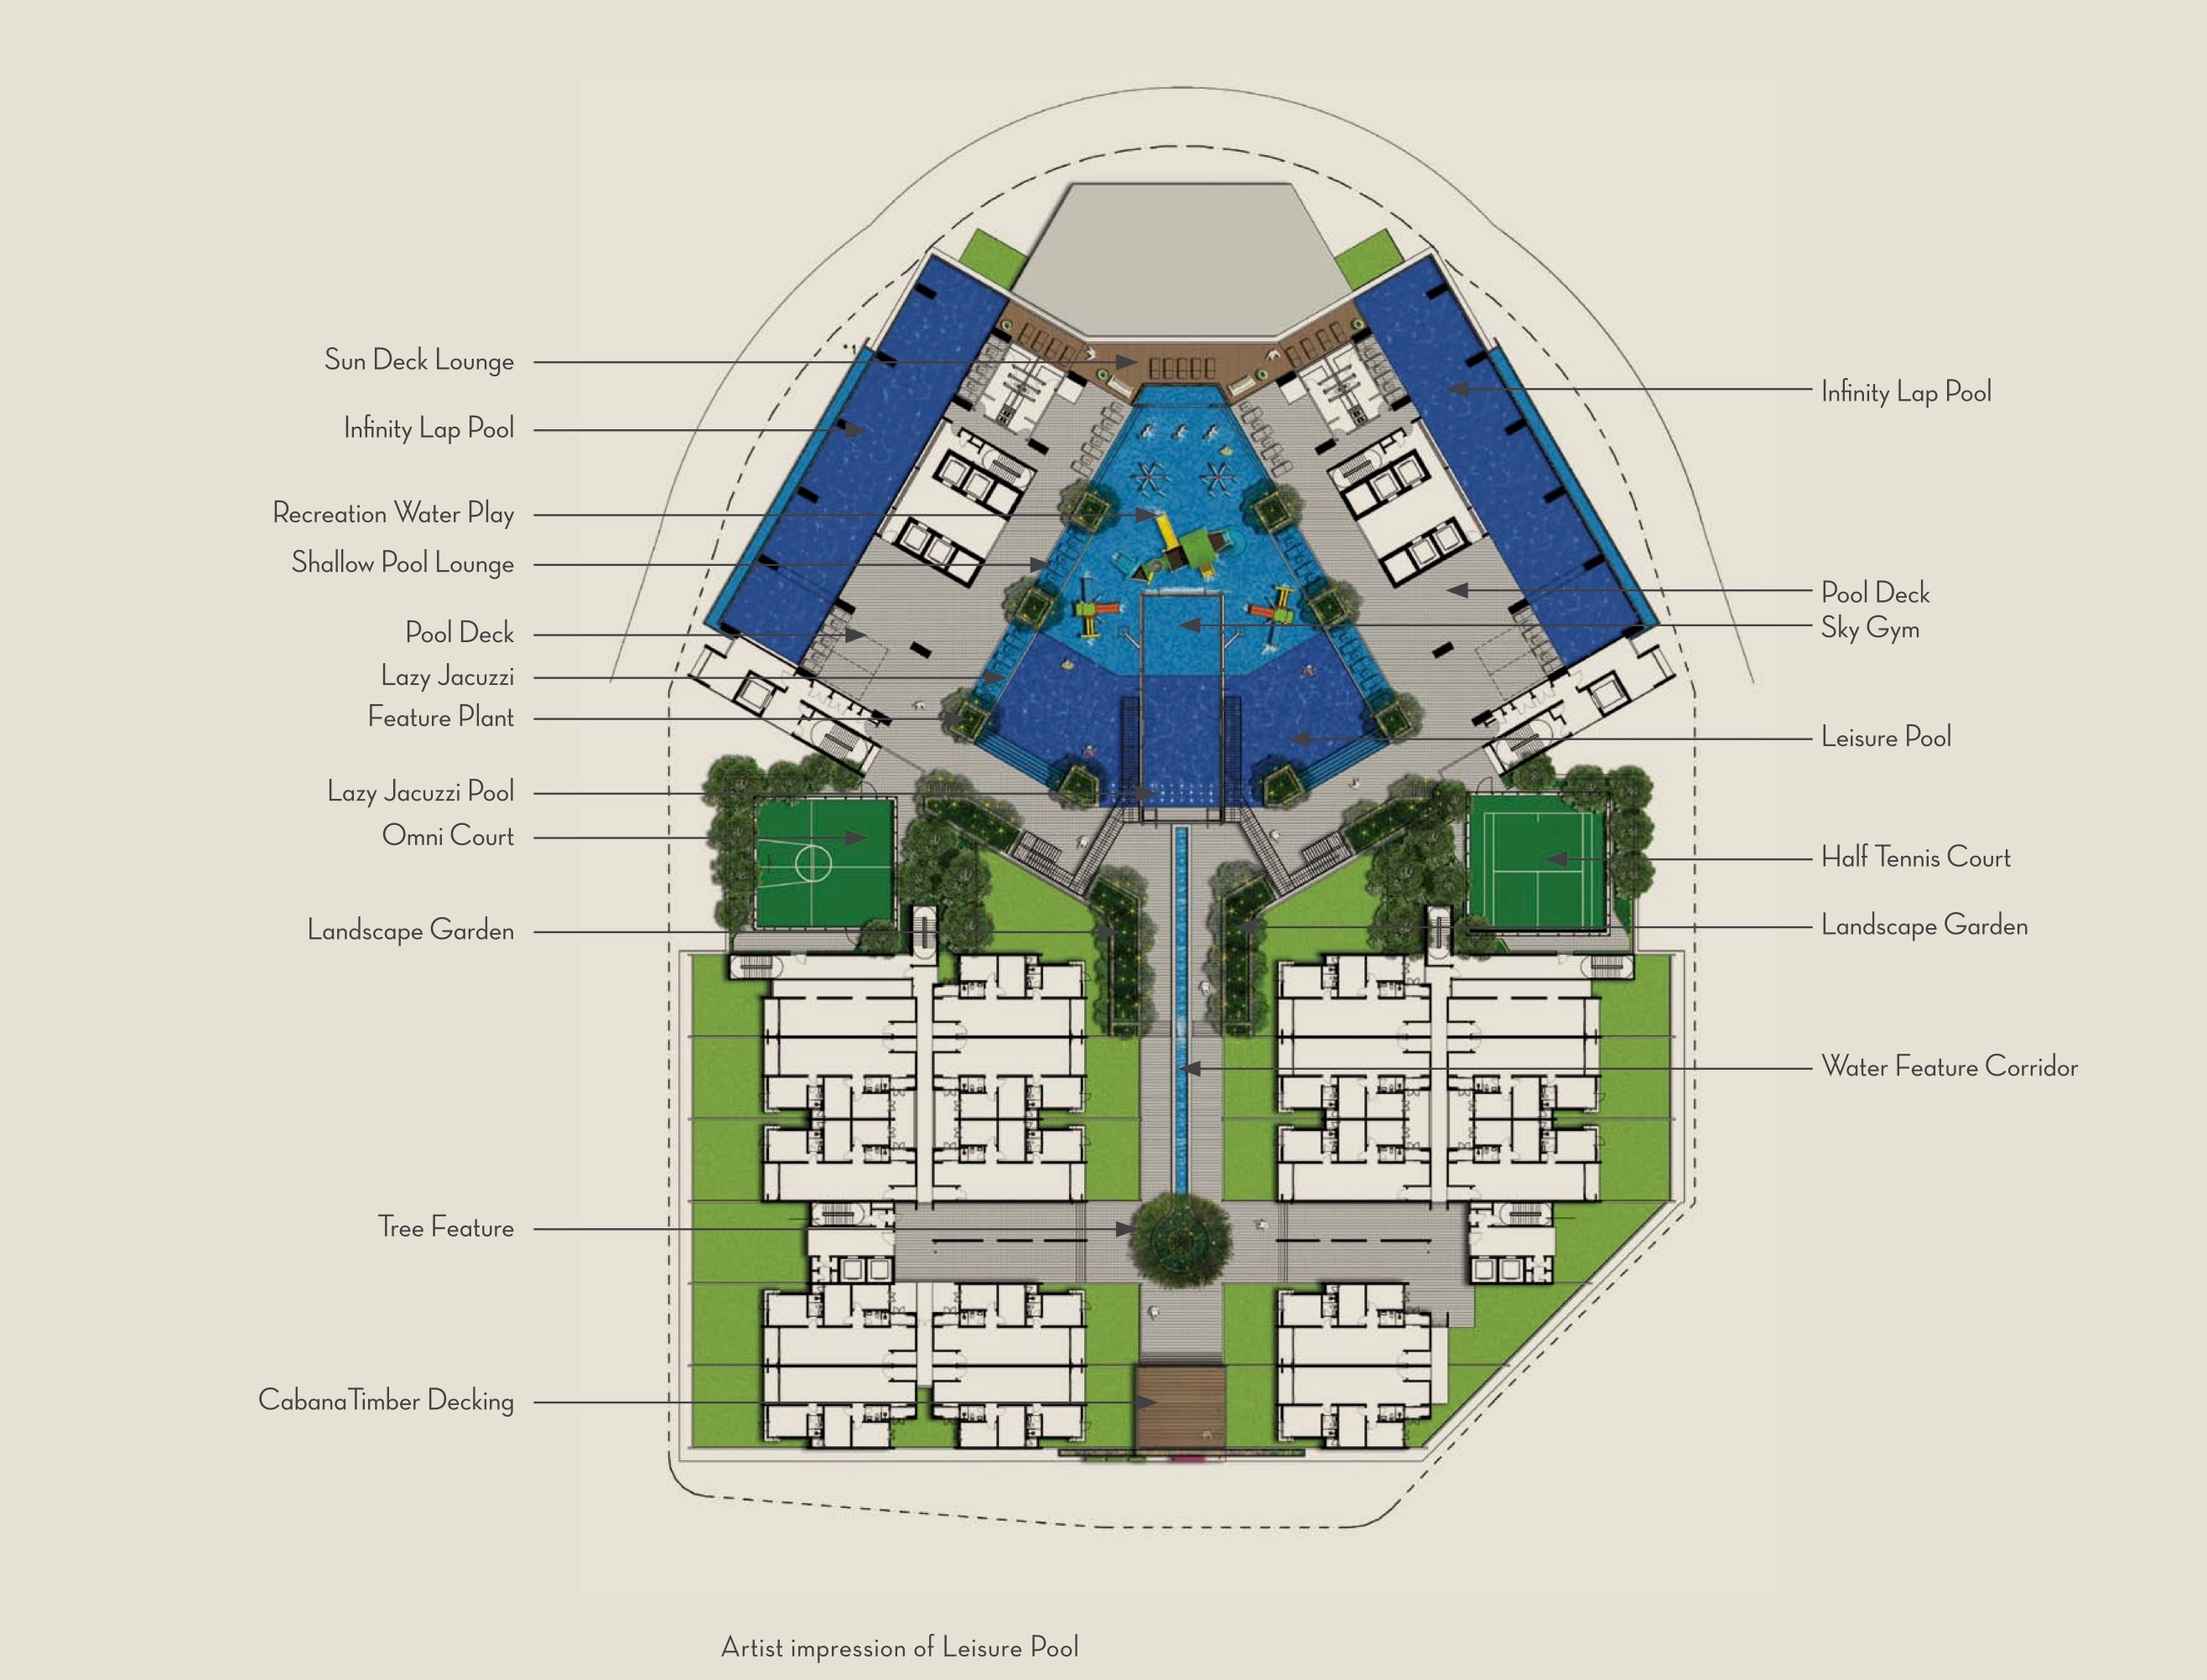 Site Plan of The Shore